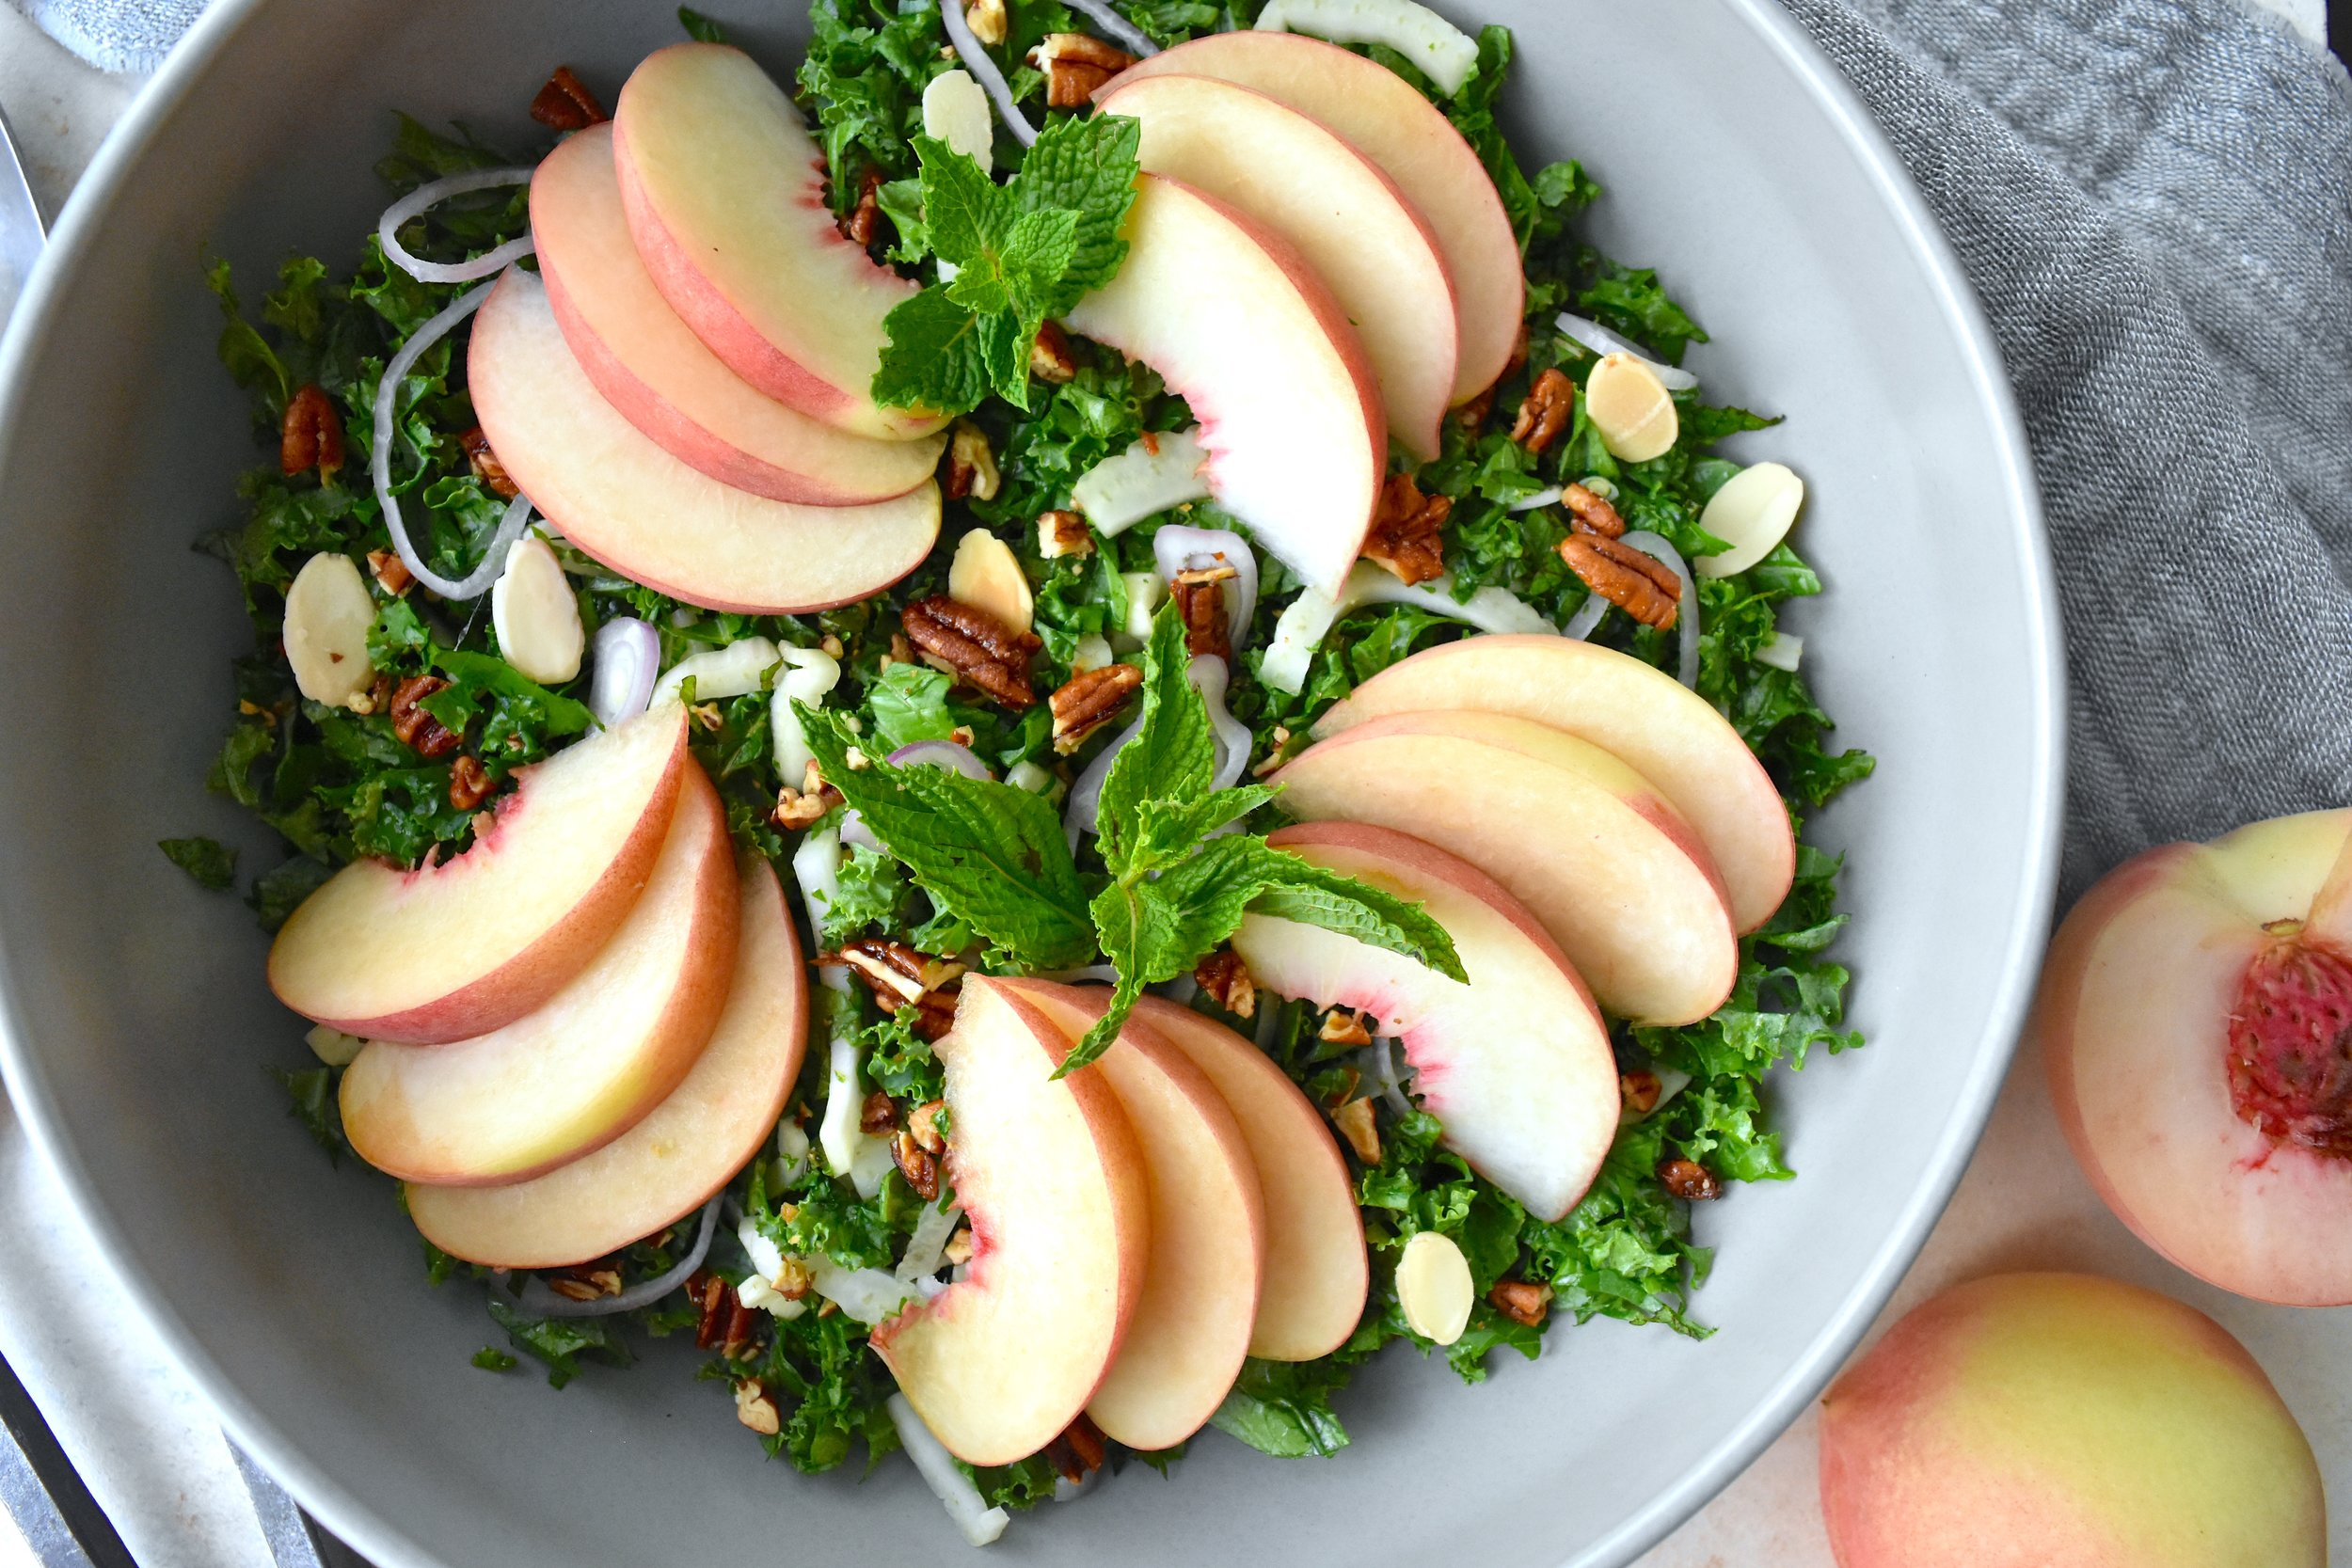 Peach and Kale Salad 1